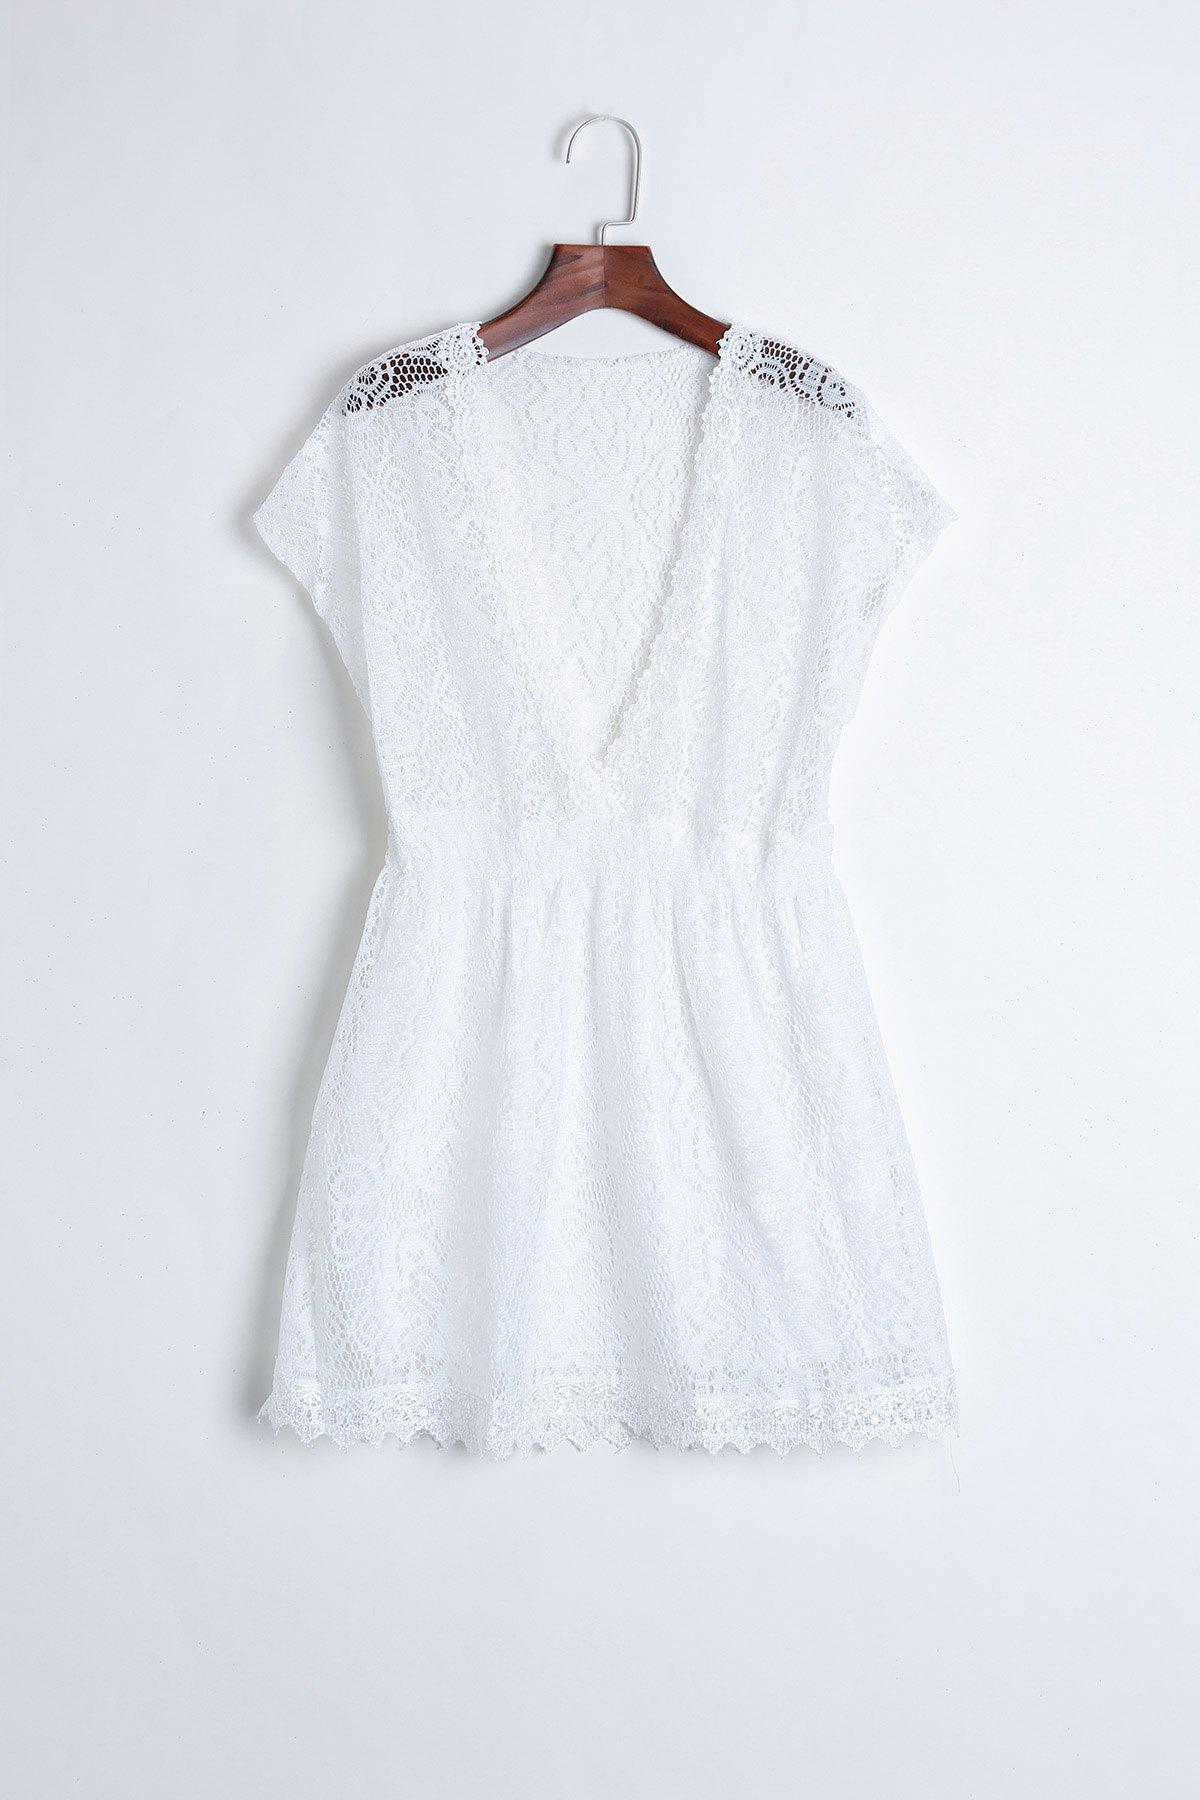 Sexy Plunging Neckline Elastic Waist Short Sleeve Mini Lace Dress For WomenWOMEN<br><br>Size: ONE SIZE; Color: WHITE; Style: Cute; Material: Lace; Silhouette: A-Line; Dresses Length: Mini; Neckline: Plunging Neck; Sleeve Length: Short Sleeves; Embellishment: Lace; Pattern Type: Solid; With Belt: No; Season: Summer; Weight: 0.167kg; Package Contents: 1 x Dress;